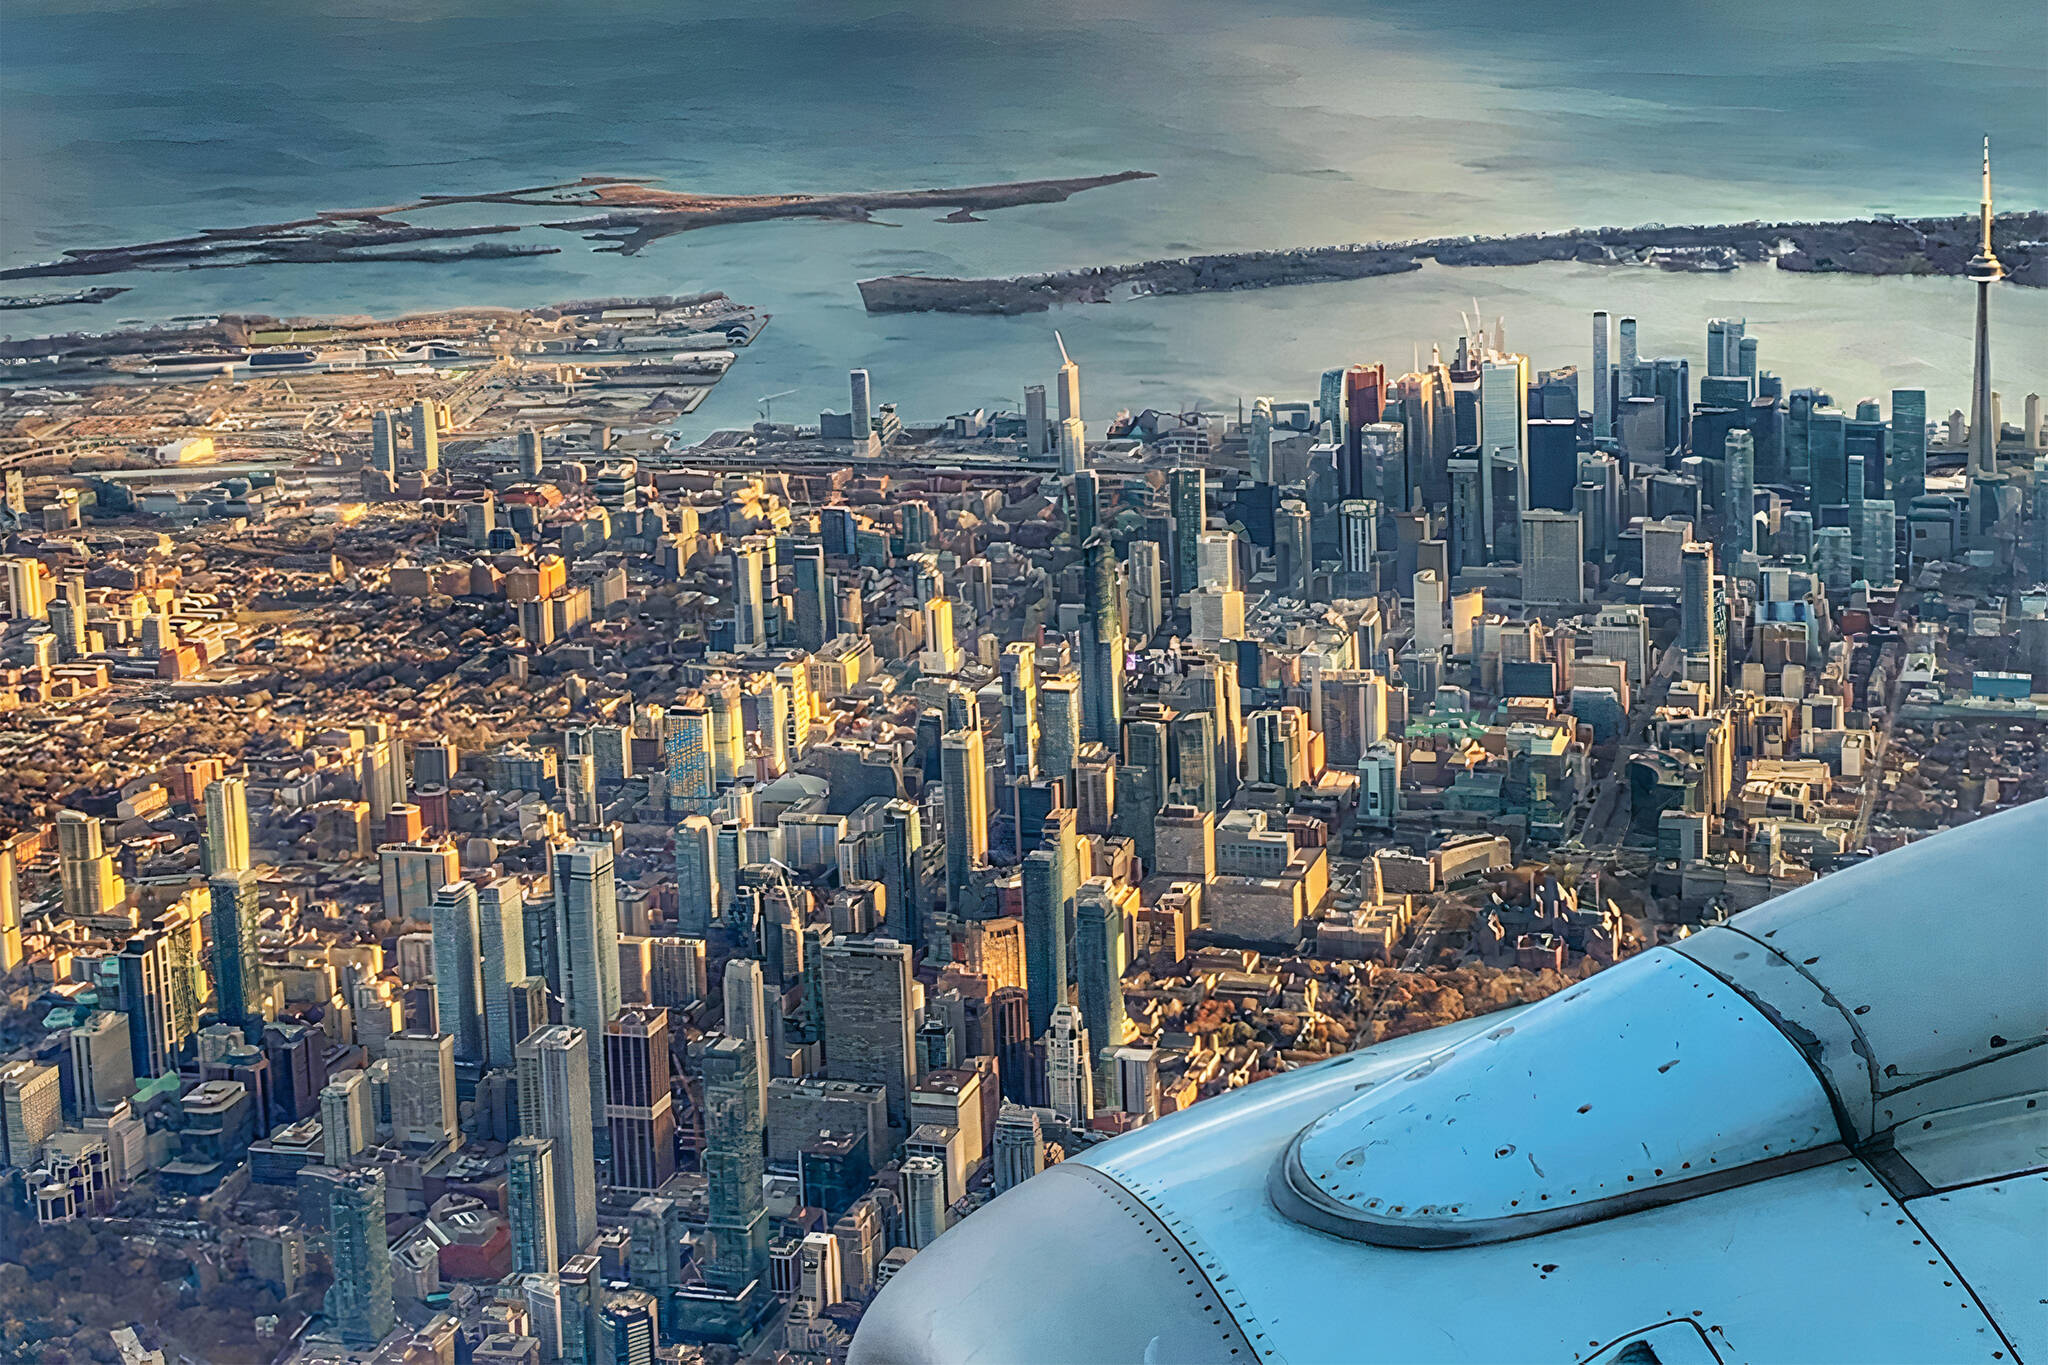 At Least 15 More Flights With Covid 19 Landed In Toronto Over The Past Two Weeks